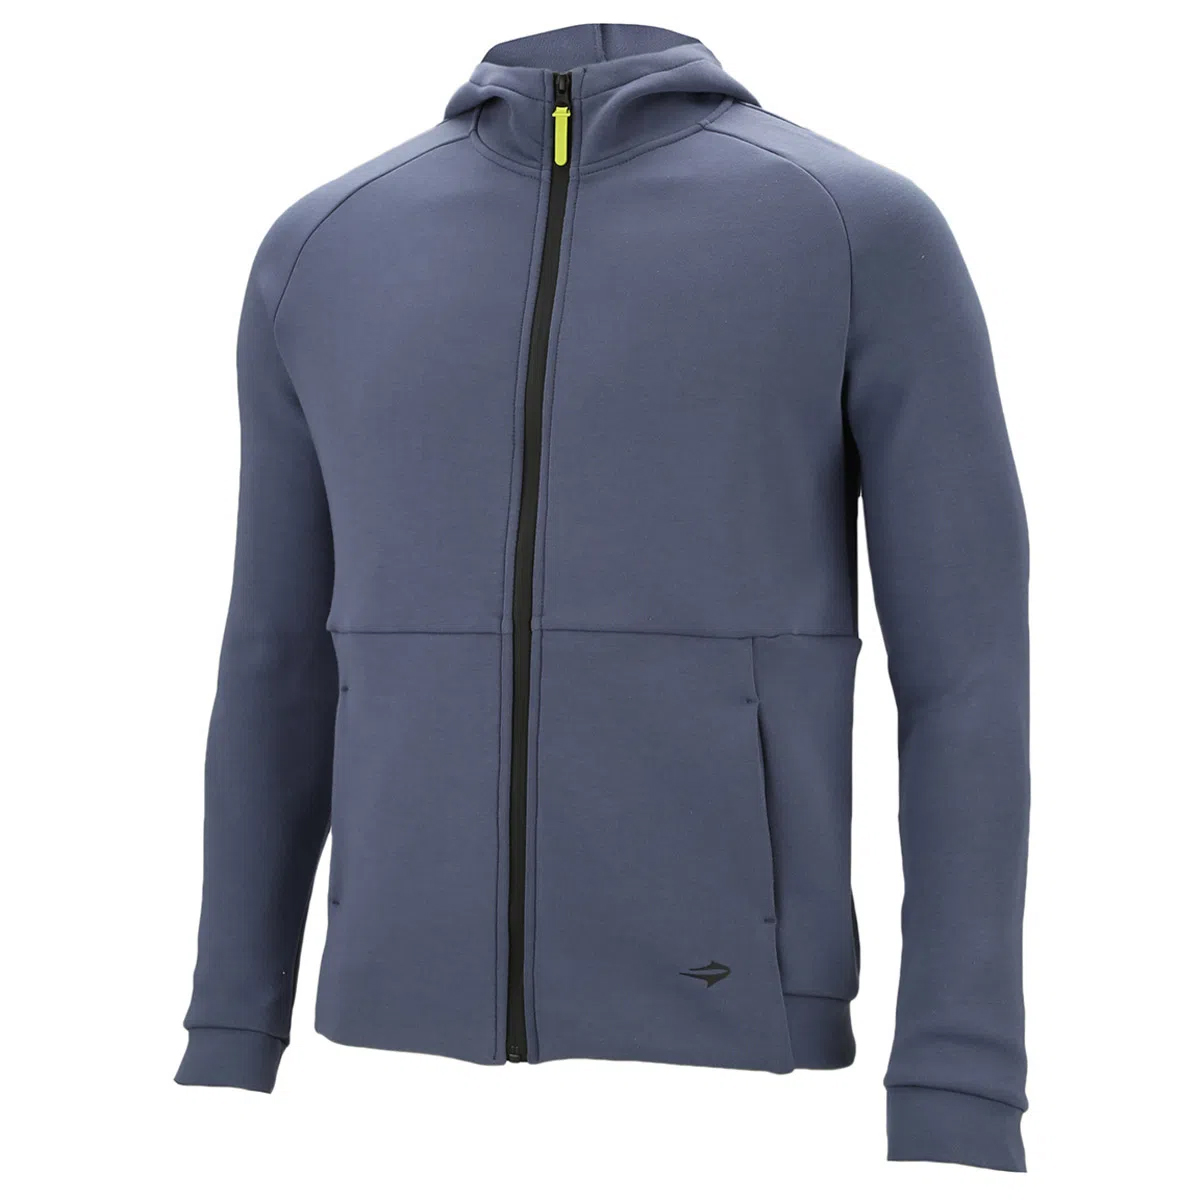 Campera Topper Fz Tech Fleece Trng,  image number null